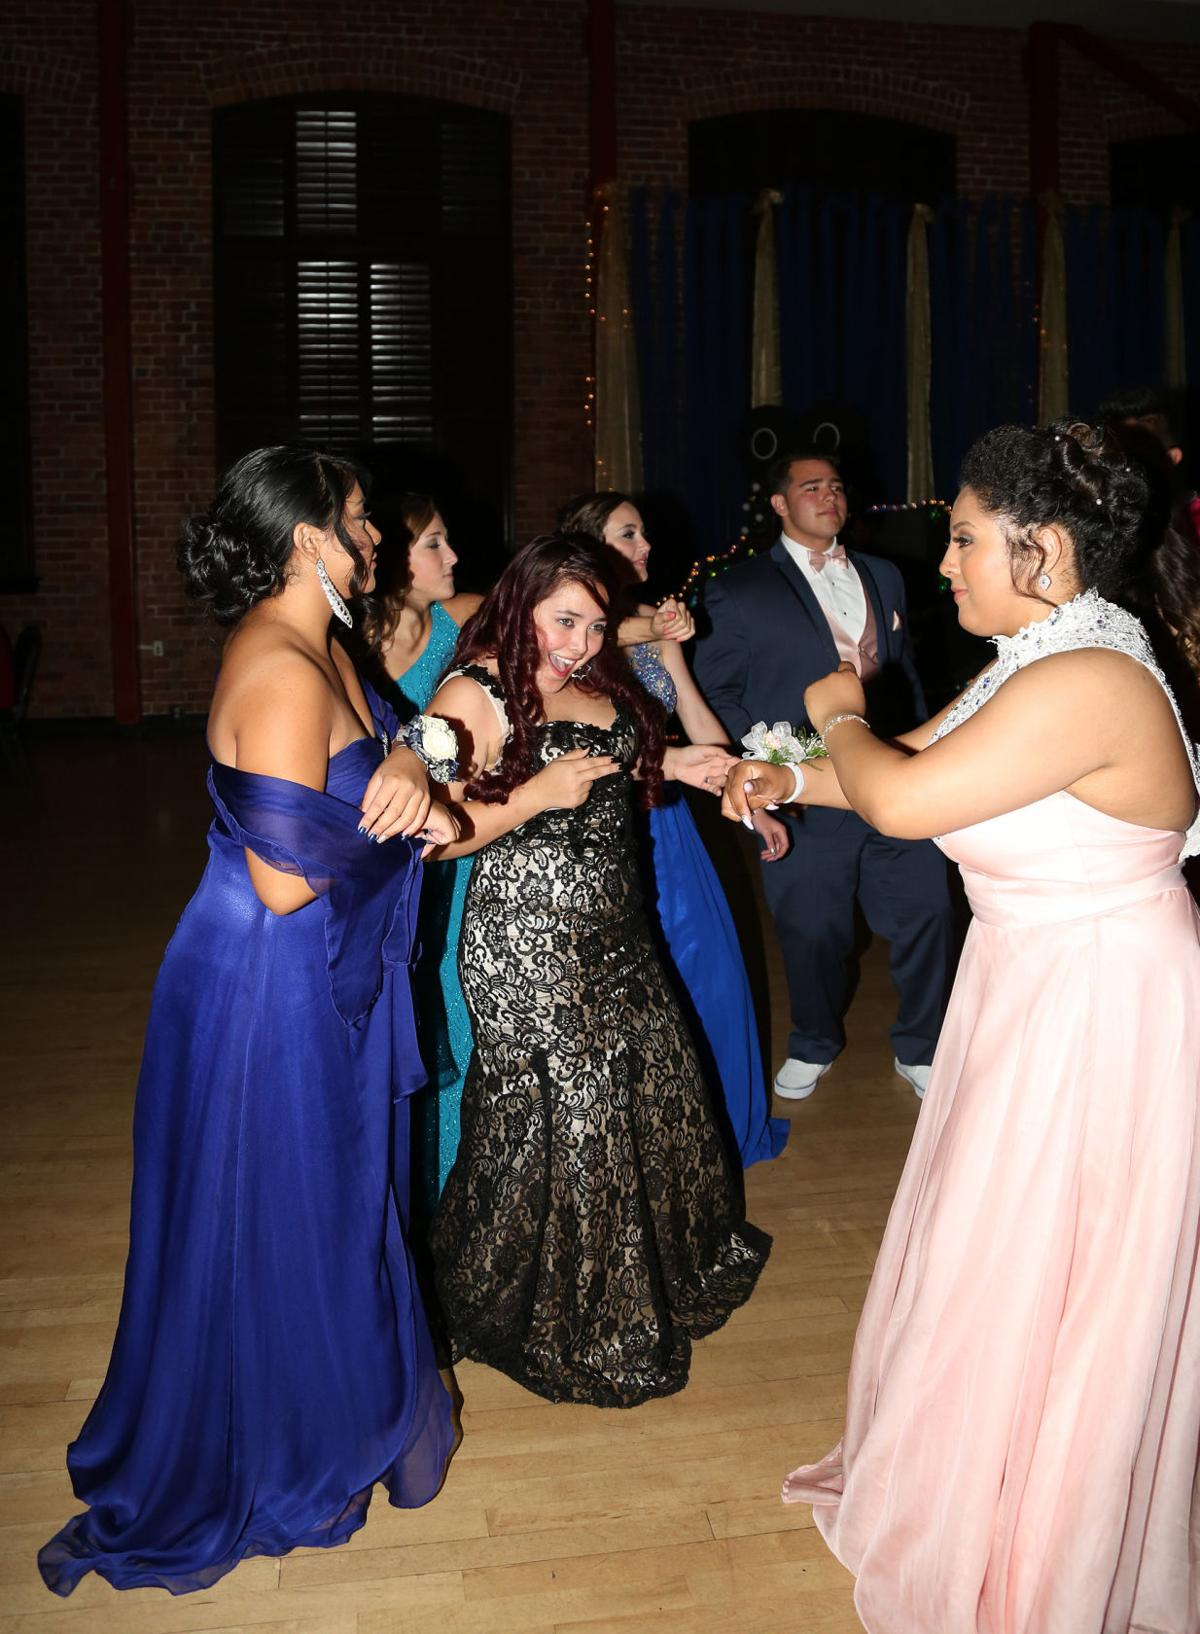 Galt High School holds prom at Hutchins Street Square in Lodi